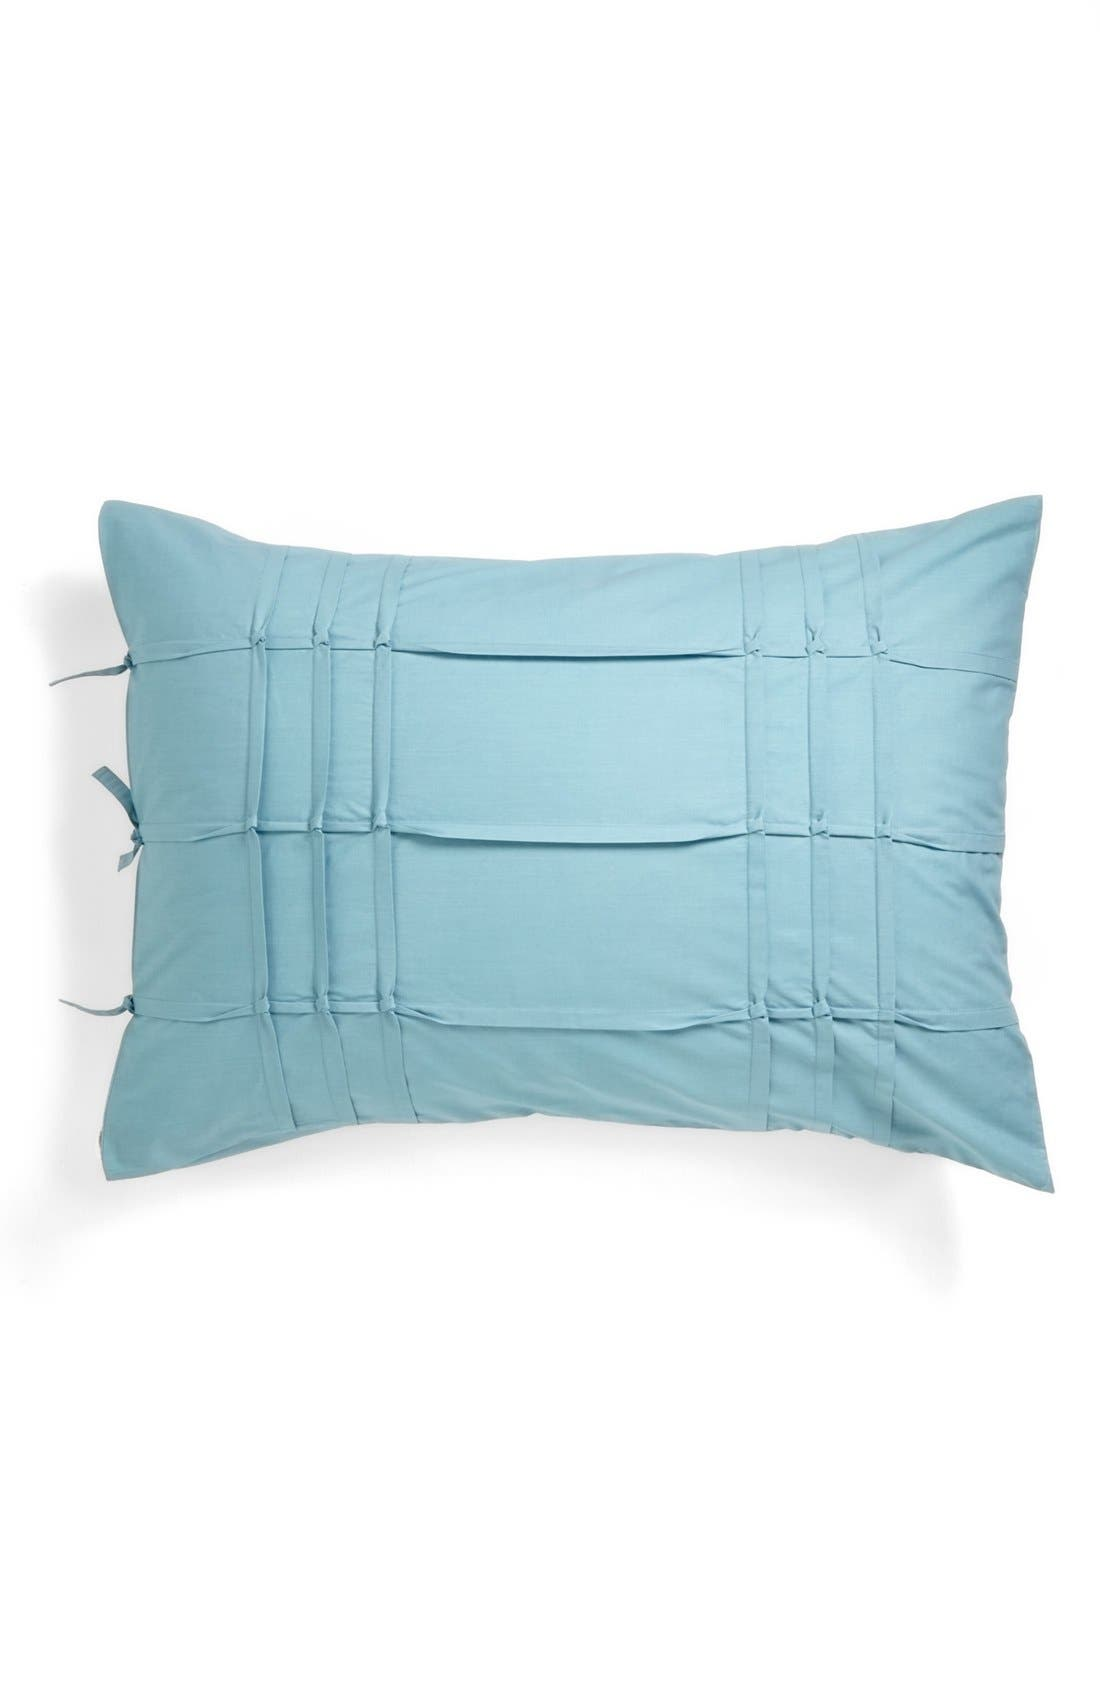 'Carson' Pillow Sham,                             Main thumbnail 1, color,                             Teal Waters